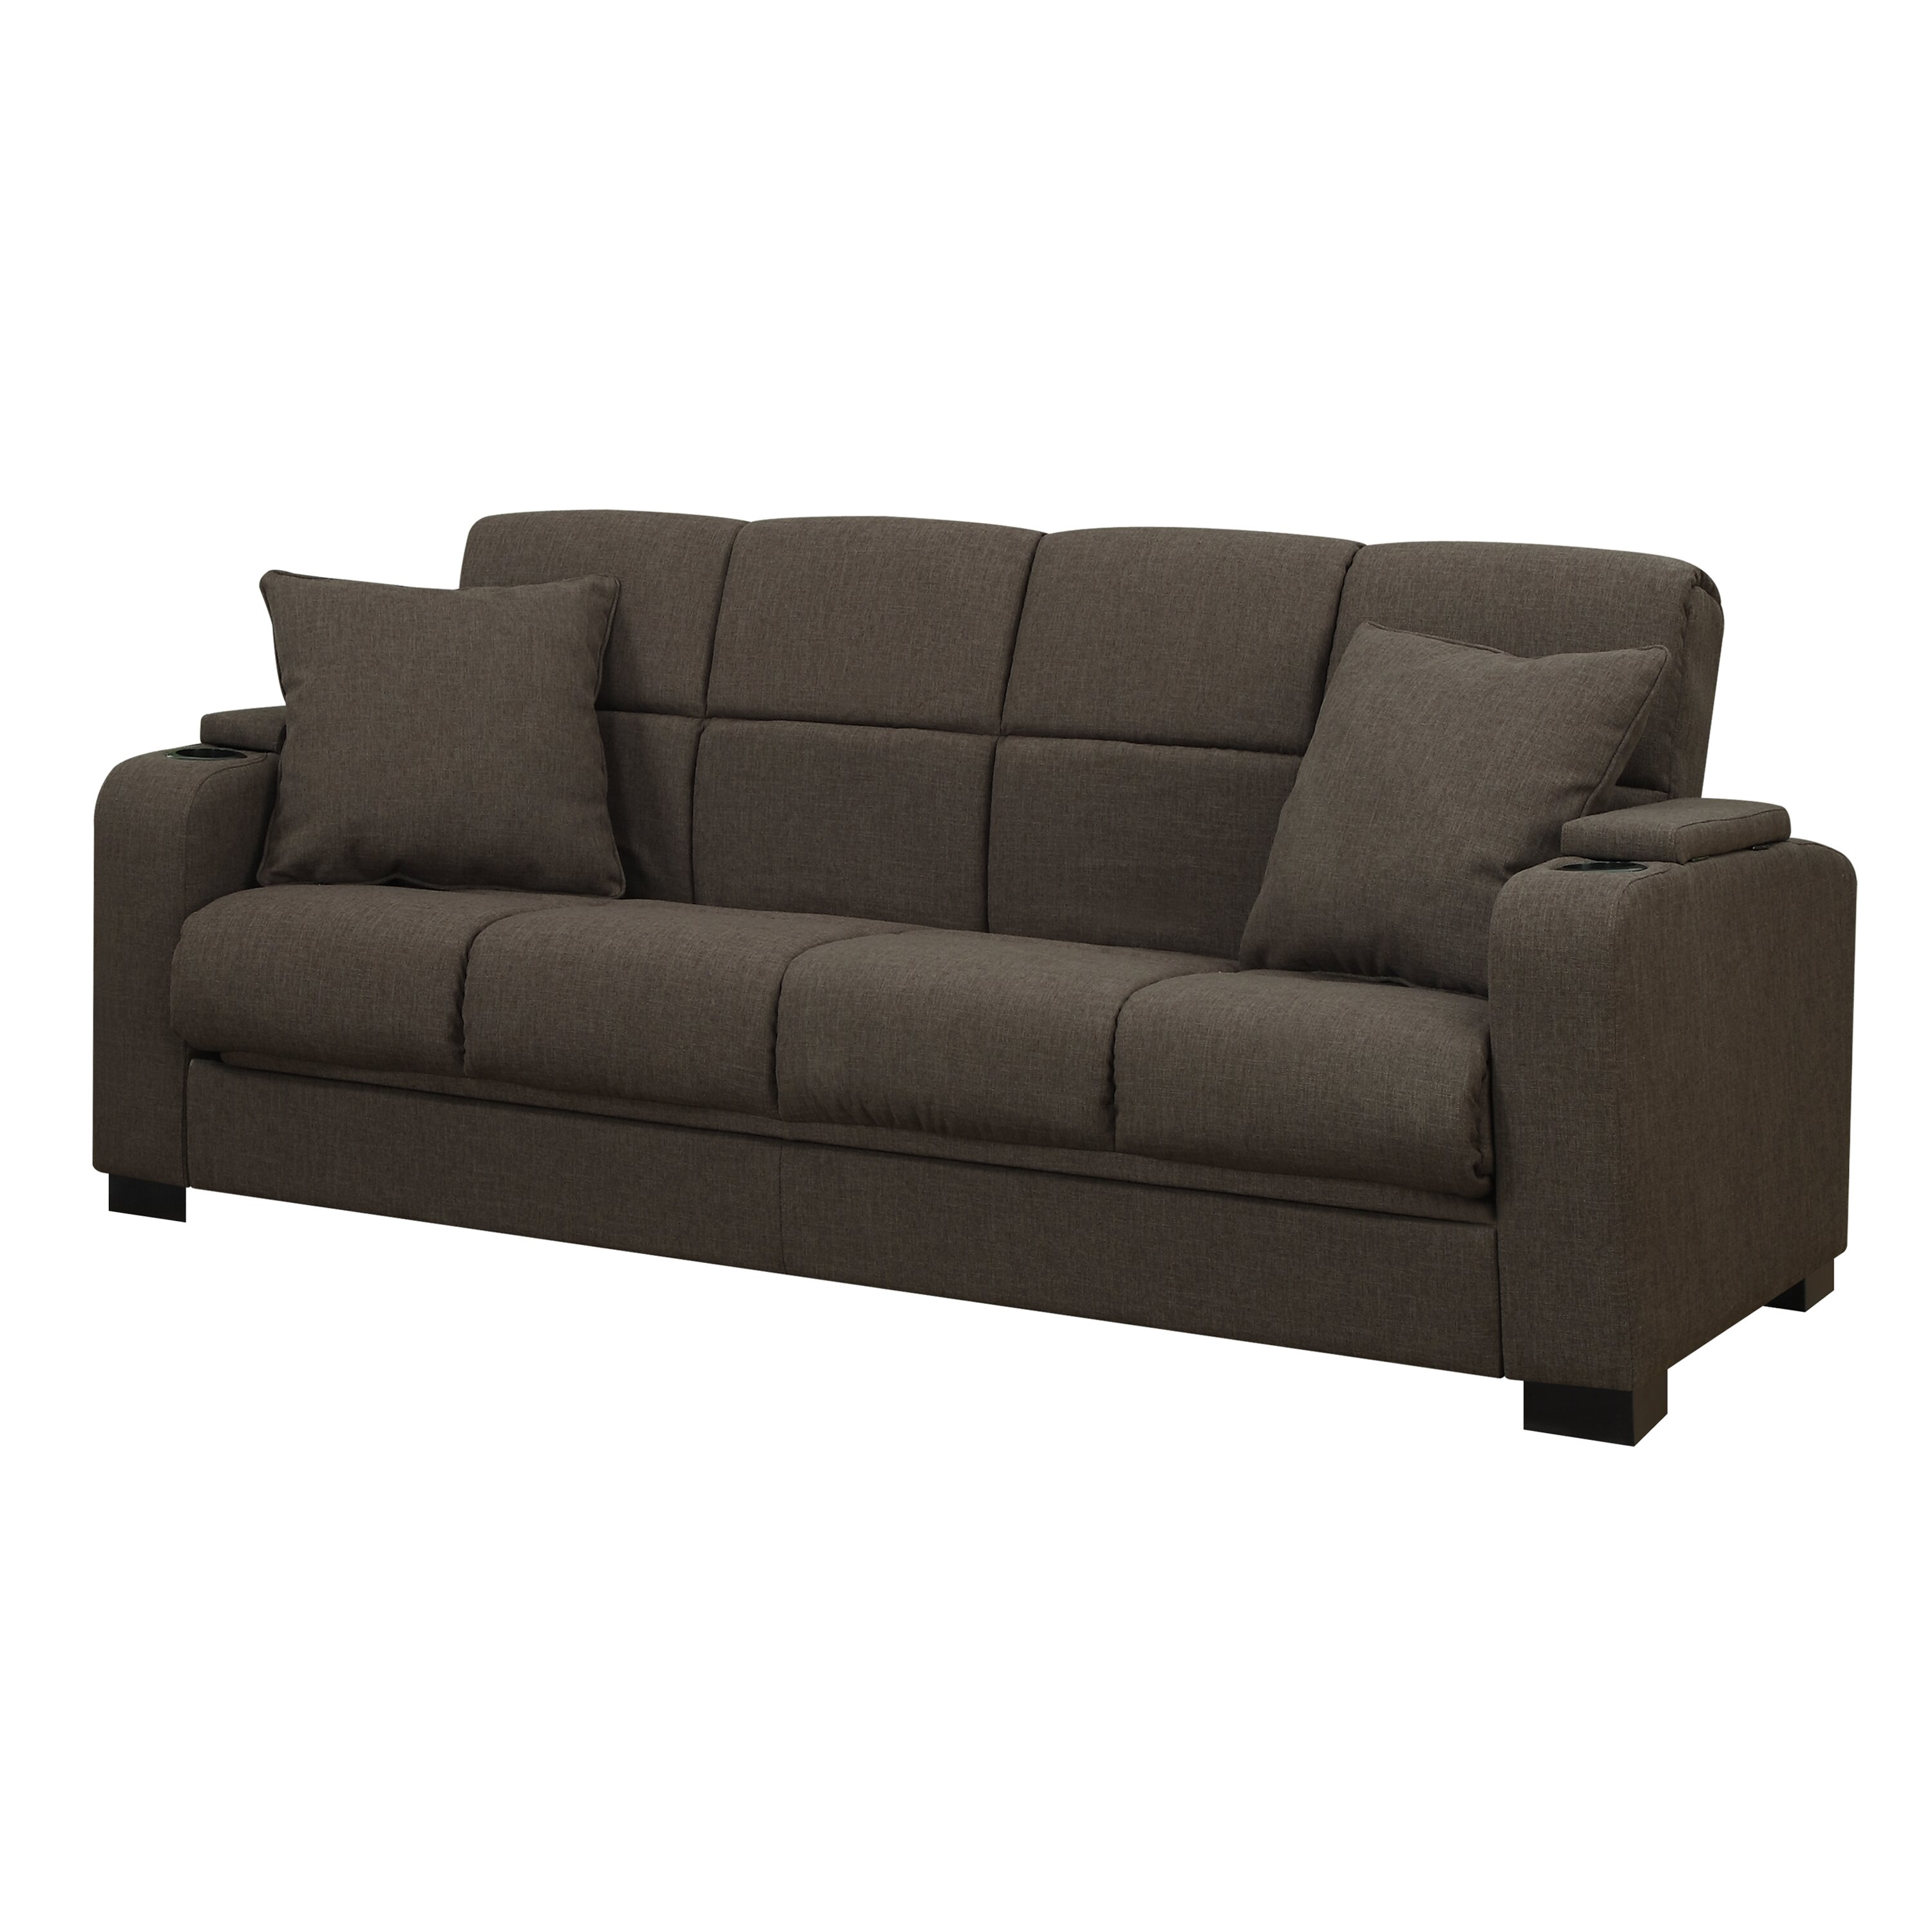 Wayfair sofa sleeper wayfair sofa sleeper centerfieldbar for Wayfair sectionals